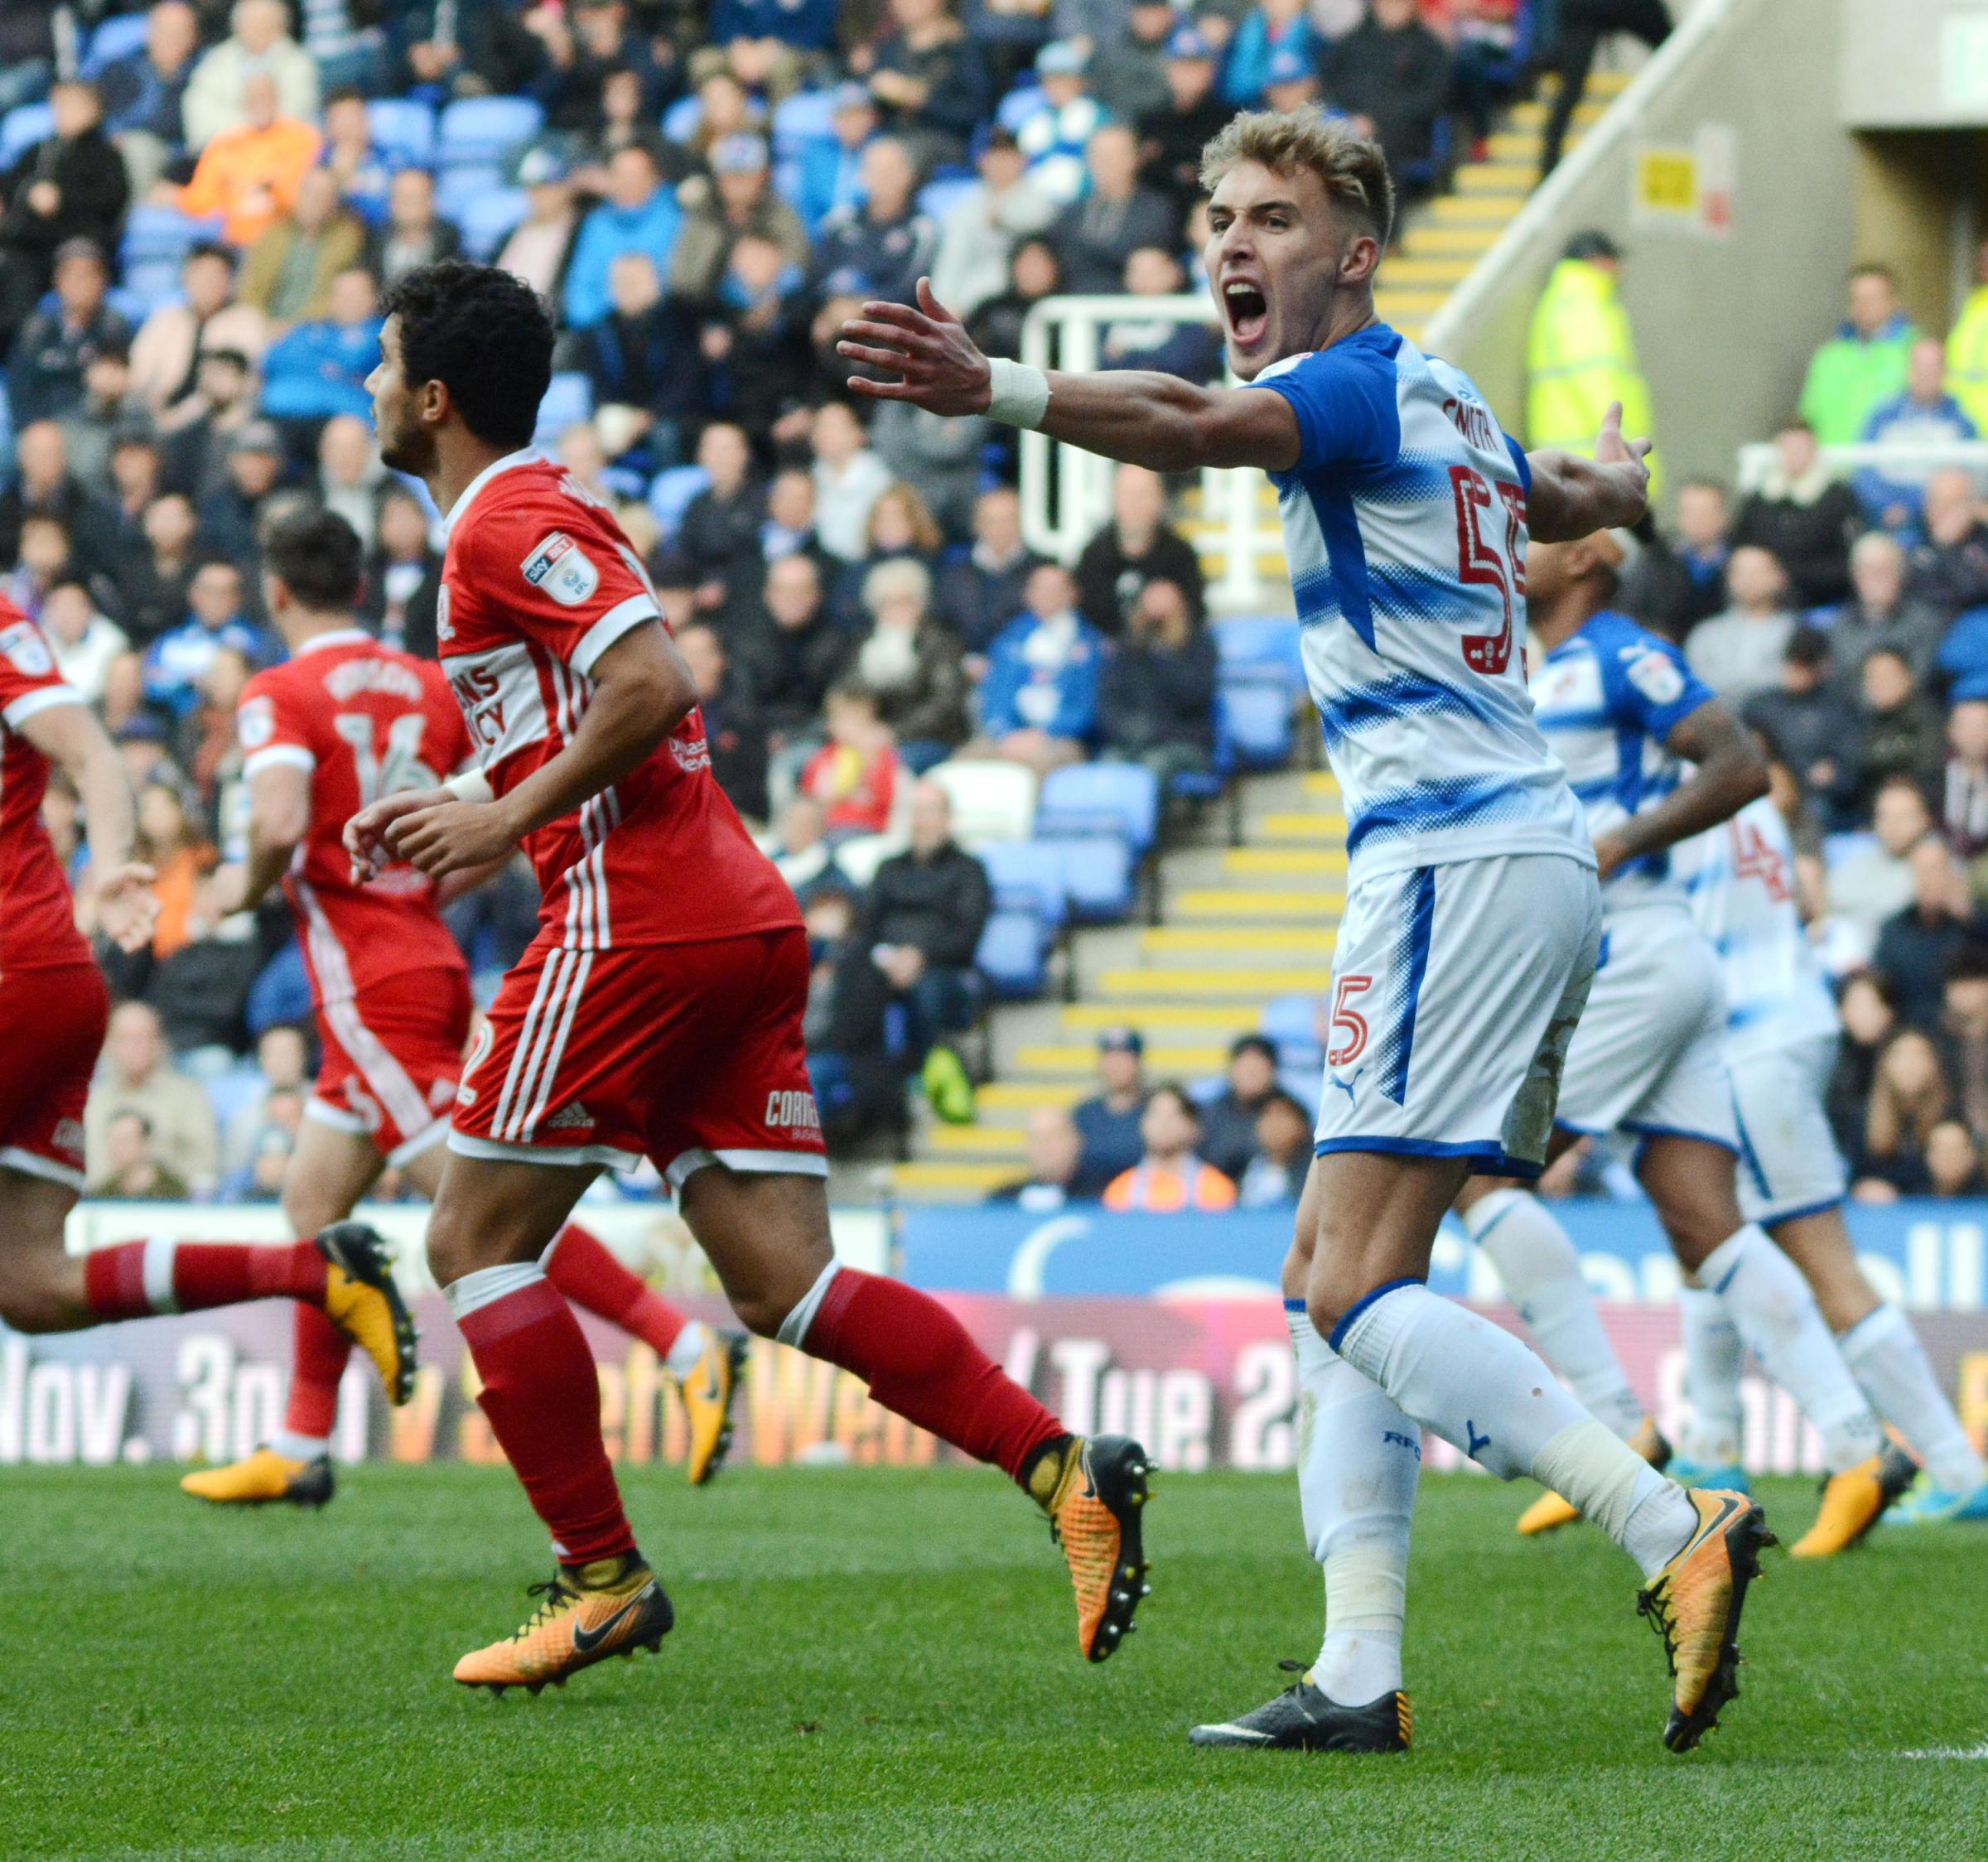 Sam Smith 1710104 Reading FC 0:2 Middlesbrough - Championship - Pictures: Mike Swift.